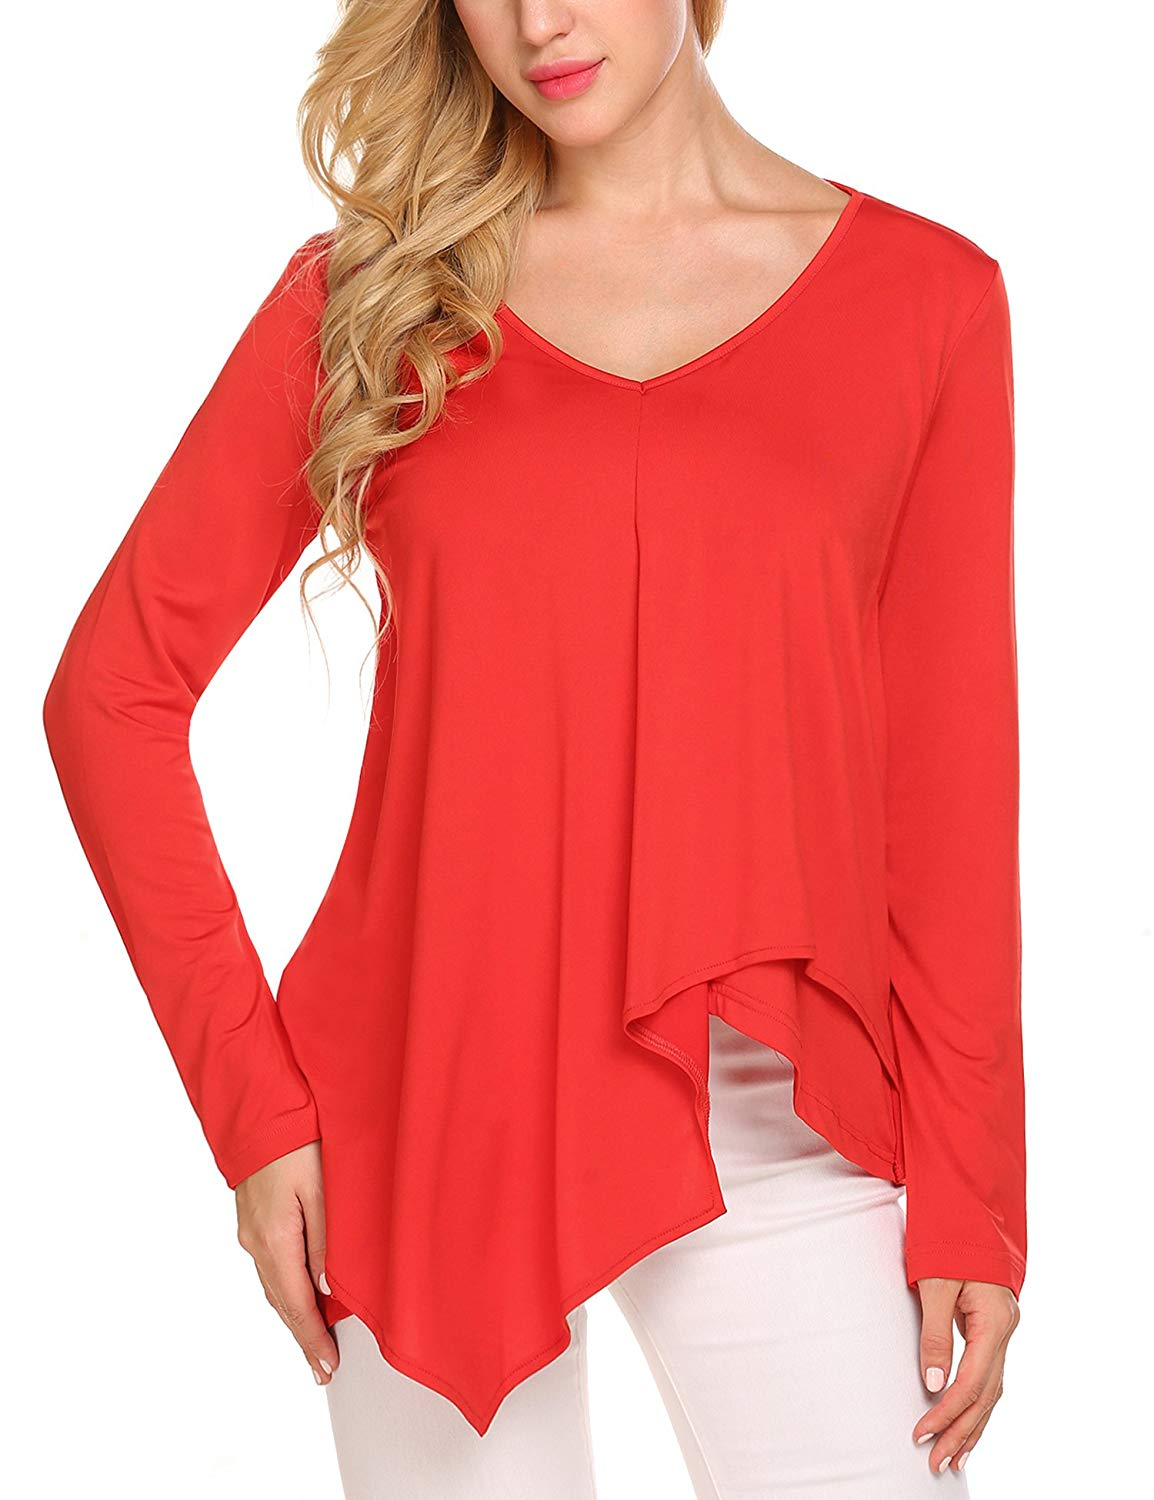 81d4c7b95fef Get Quotations · Zeagoo Women Casual Pleated Top Double Layer Flowy Tunic  Asymmetrical Hem Solid Loose Fit Tunic Shirts